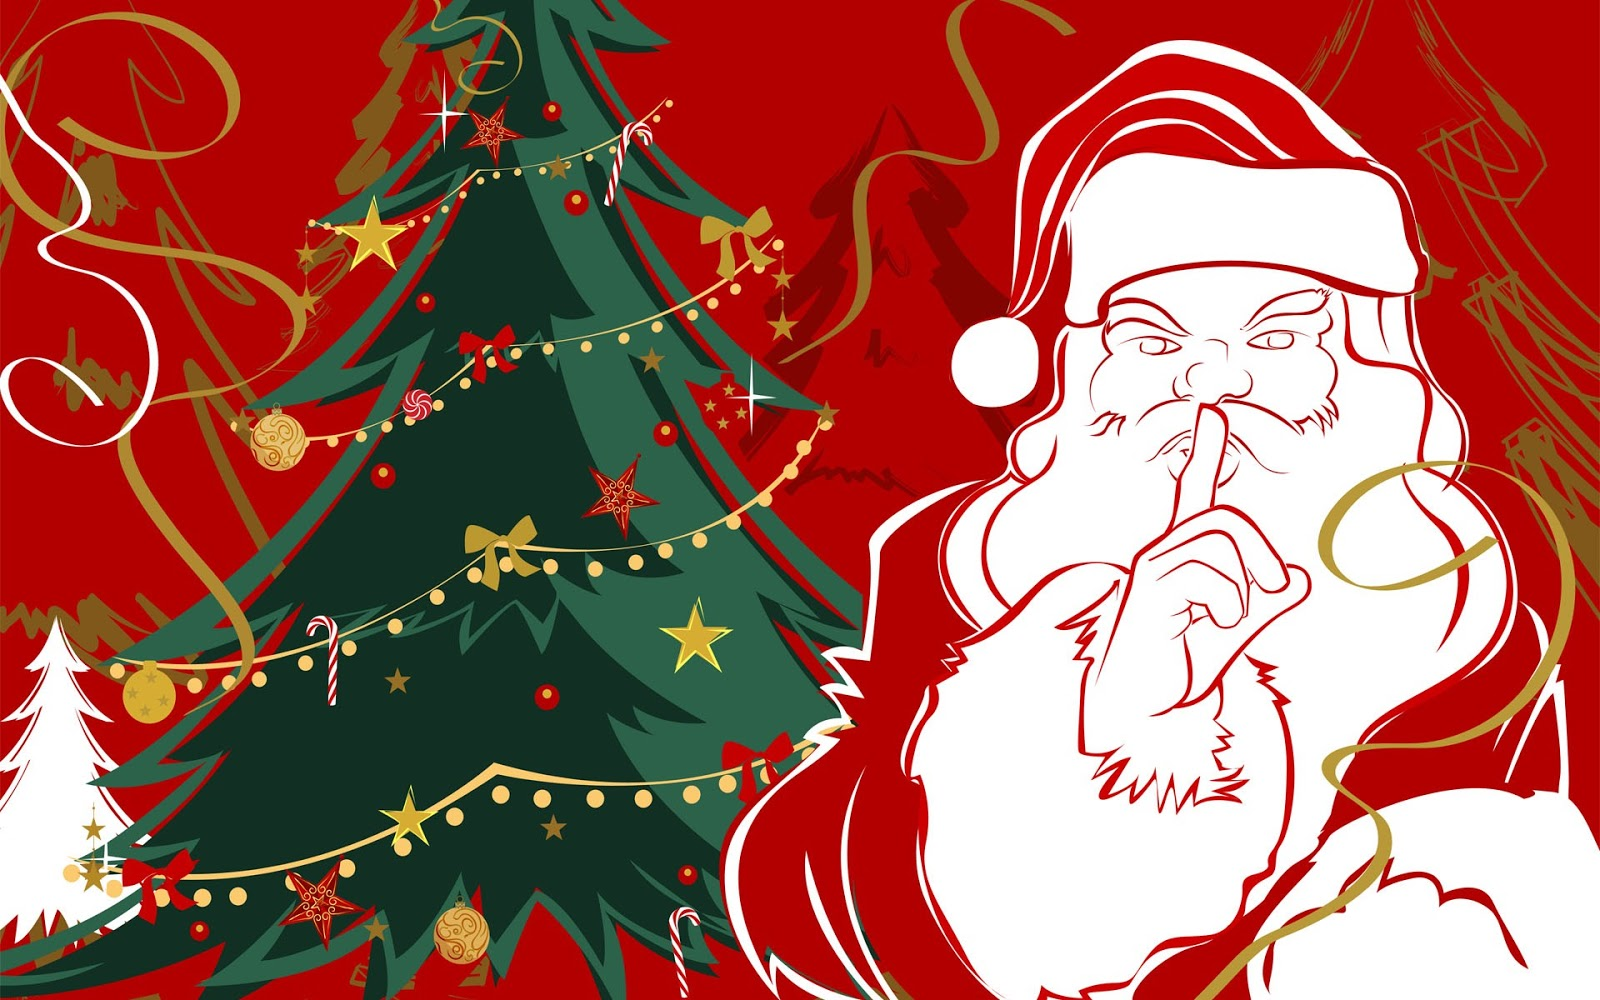 Santa Claus Pictures Cards for Kids free download   PIXHOME